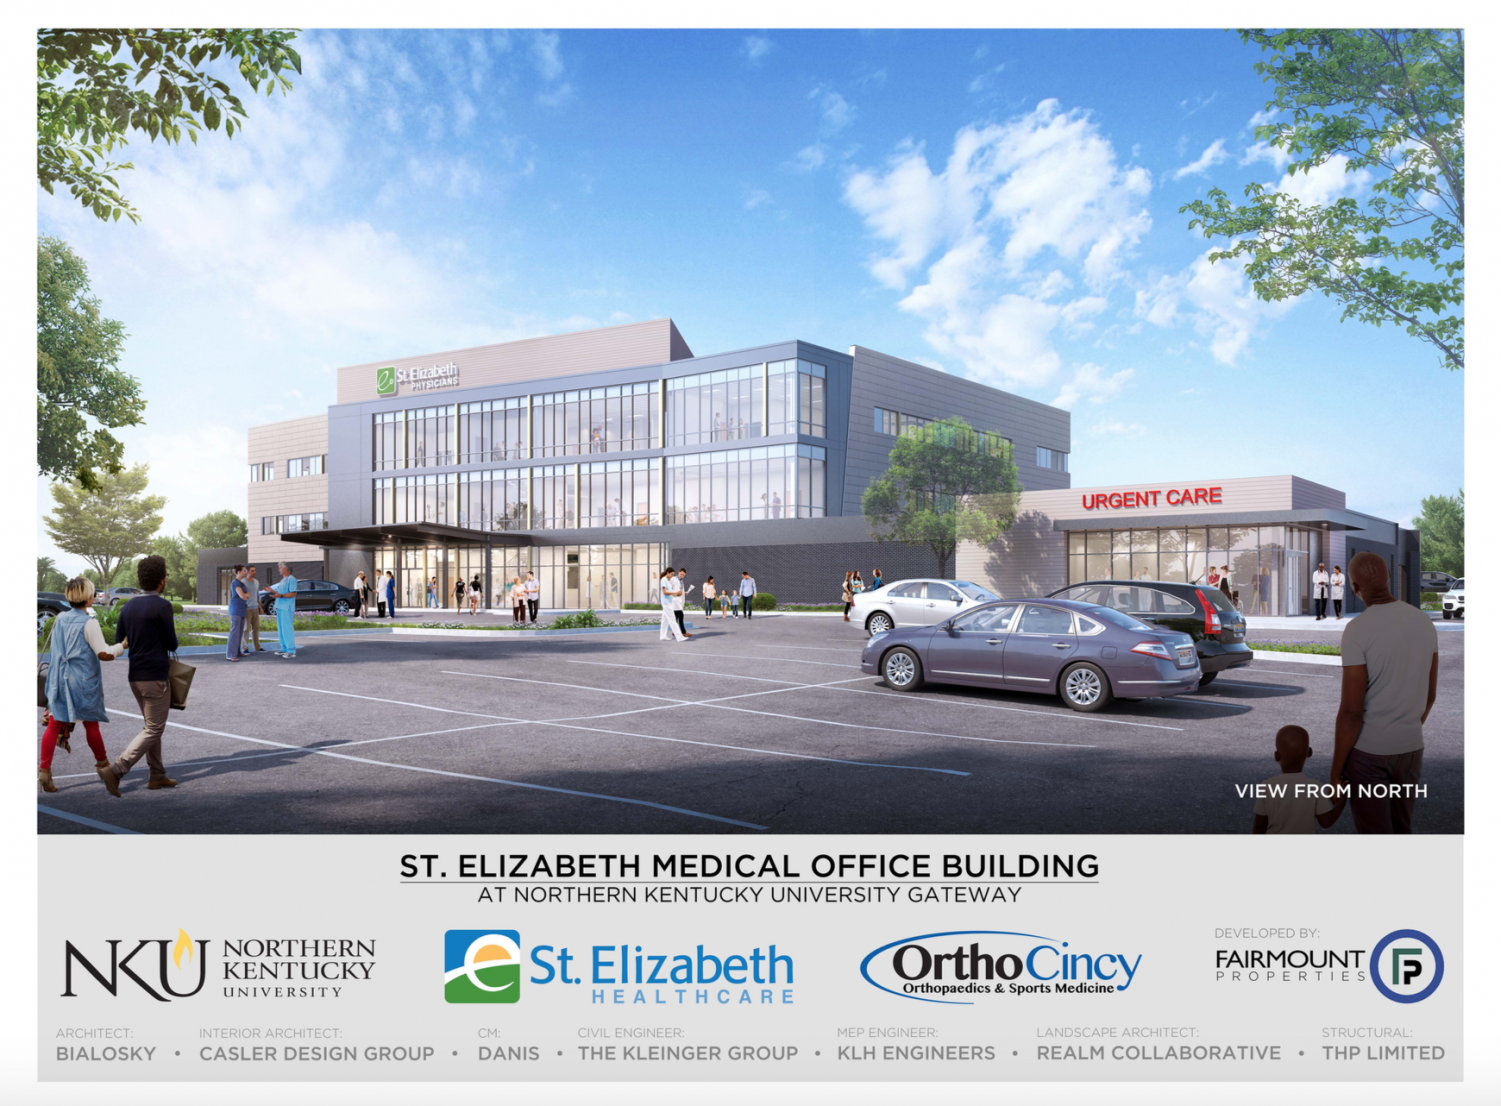 A+rendering+of+the+new+St.+Elizabeth+Healthcare+and+OrthoCincy+building+at+the+entrance+of+NKU%27s+main+campus.